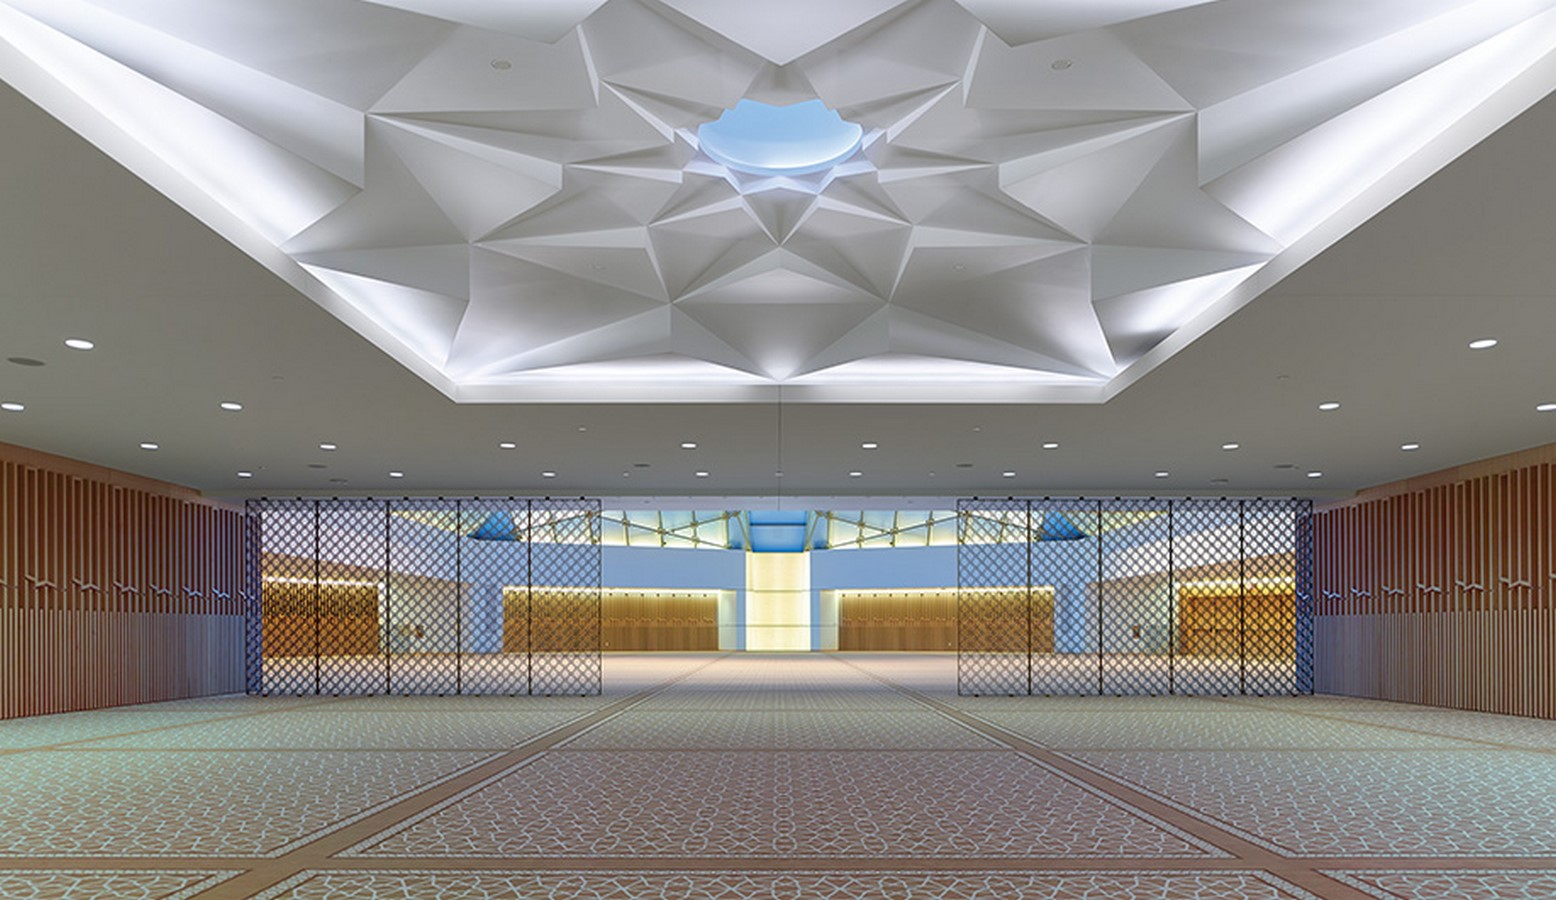 The Ismaili Centre by Charles Correa: Harmonizing Spiritual, Artistic and Natural world - Sheet10